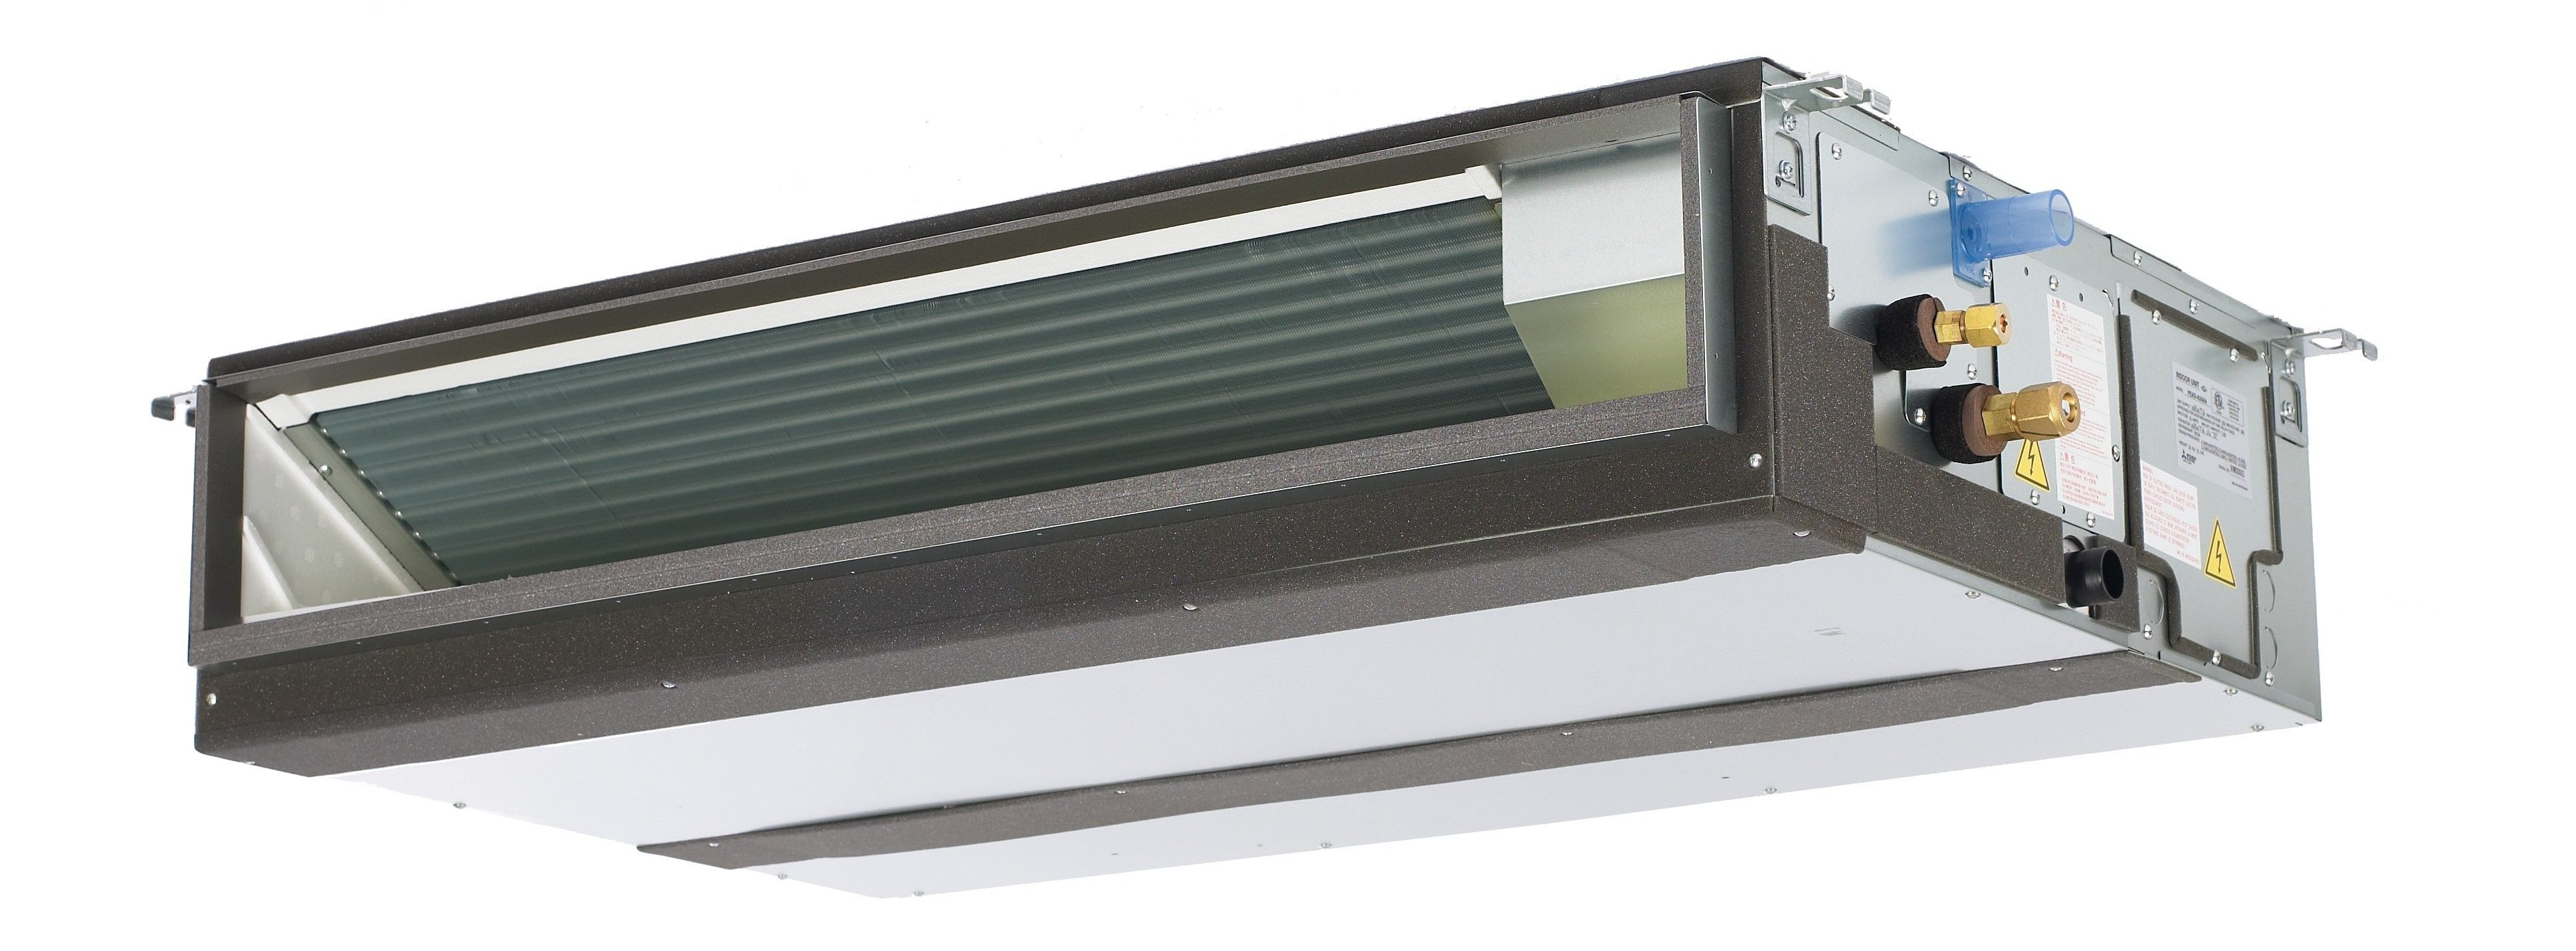 42k Btu Mitsubishi Pead Horizontal Ducted Indoor Unit